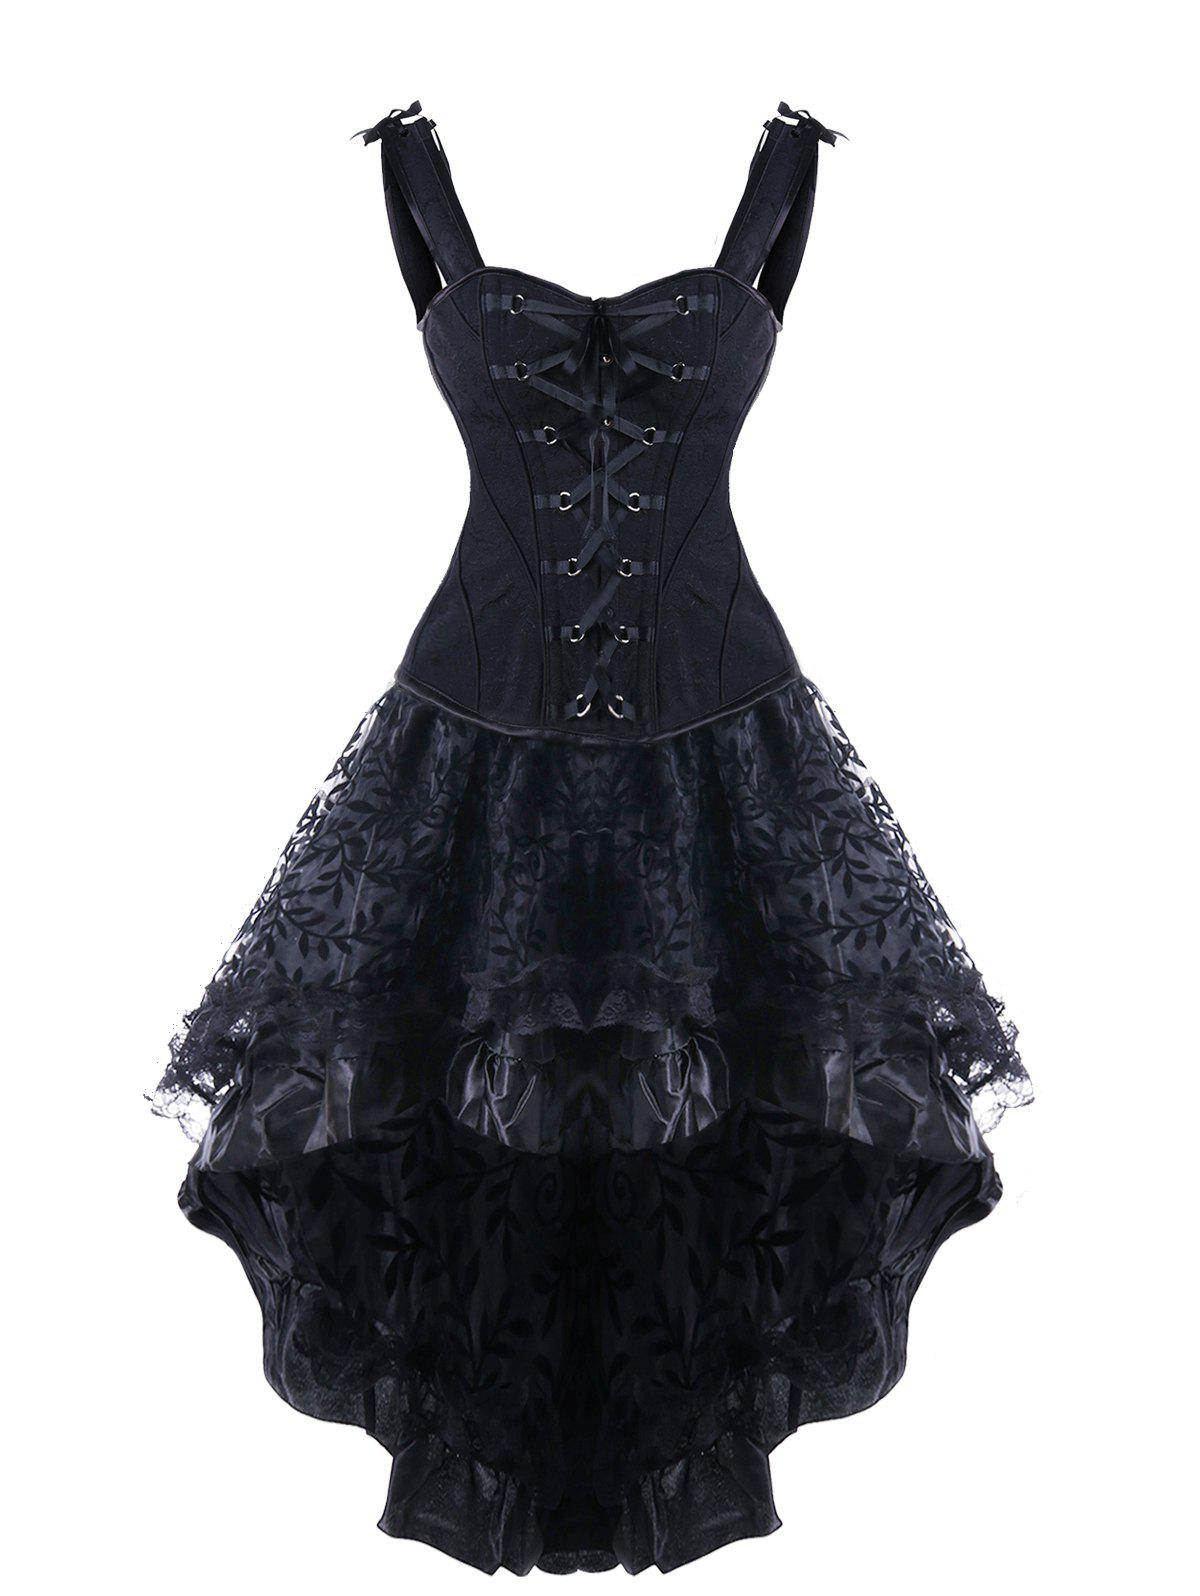 Steel Boned High Low Lace Up Corset Dress - BLACK M